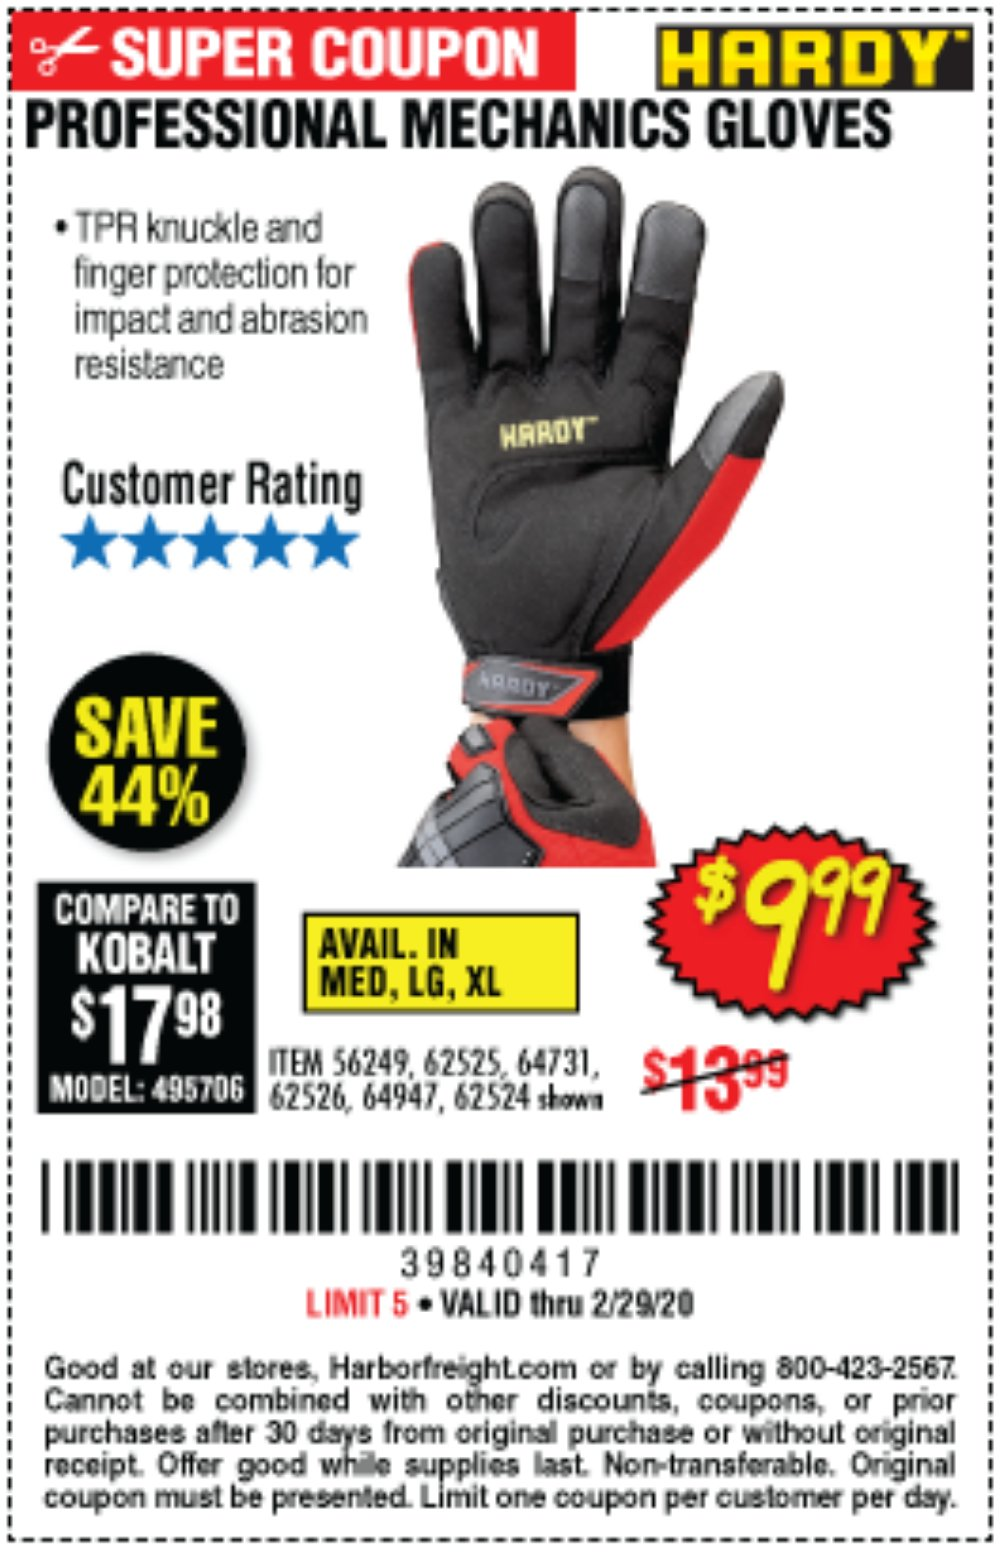 Harbor Freight Coupon, HF Coupons - Hardy Professional Mechanic's Gloves